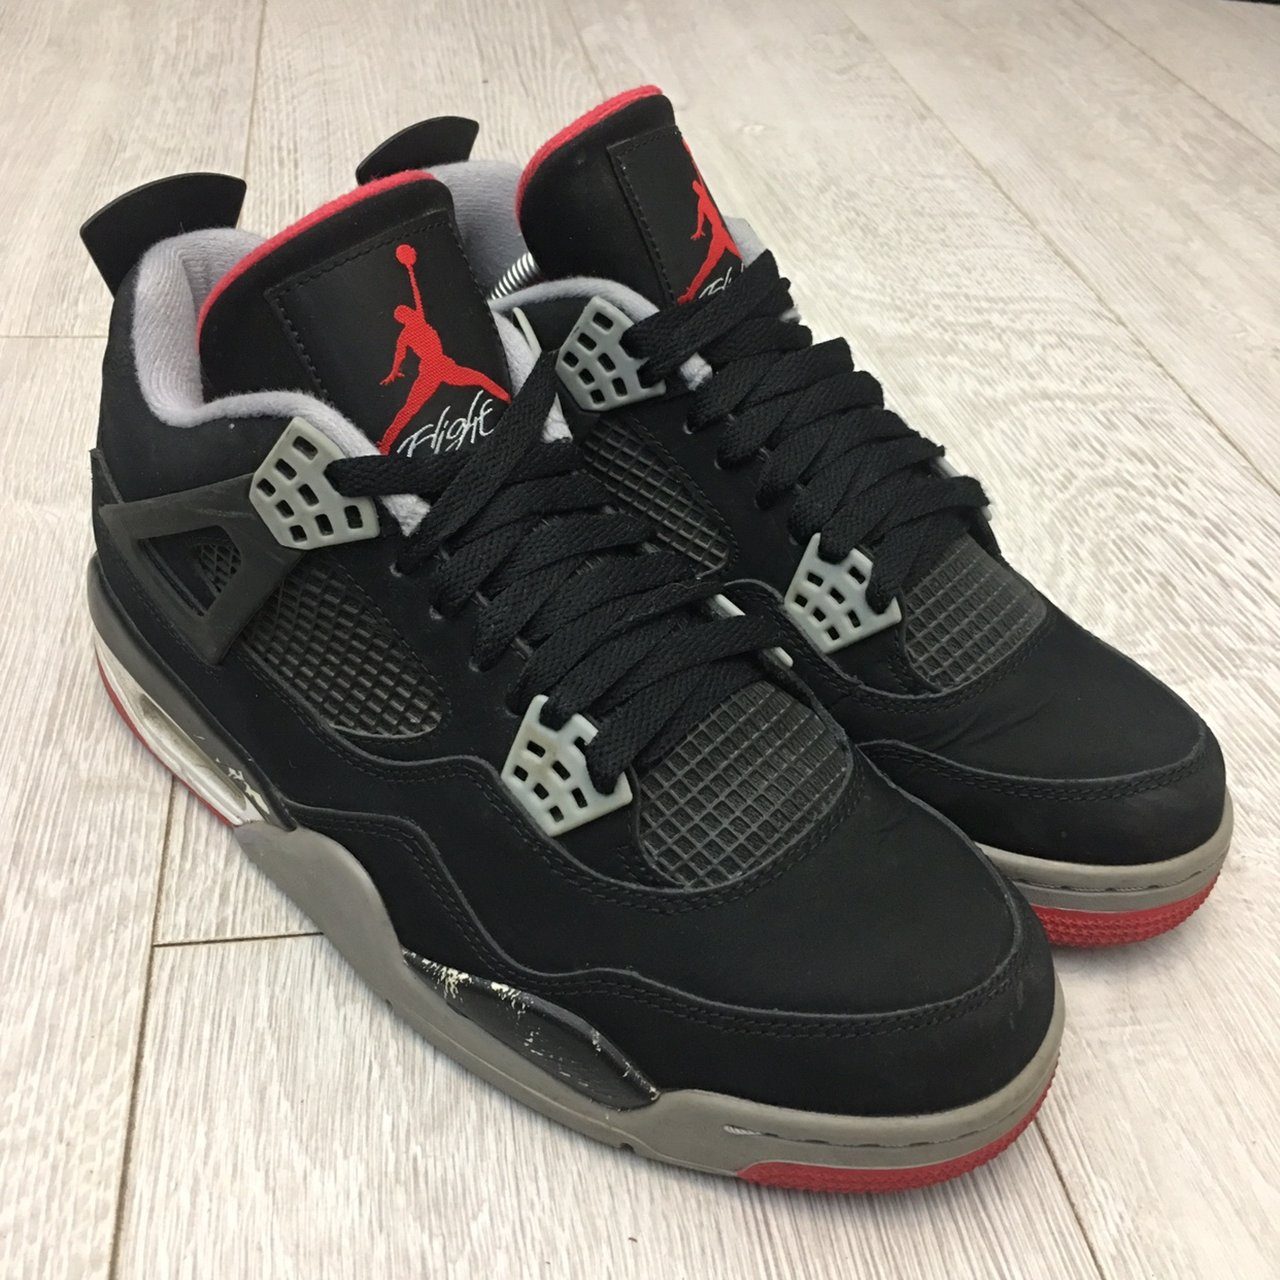 69fd24431cc0 Nike Air Jordan 4 Retro  2012 Release  Size 7 EU 41. have in - Depop